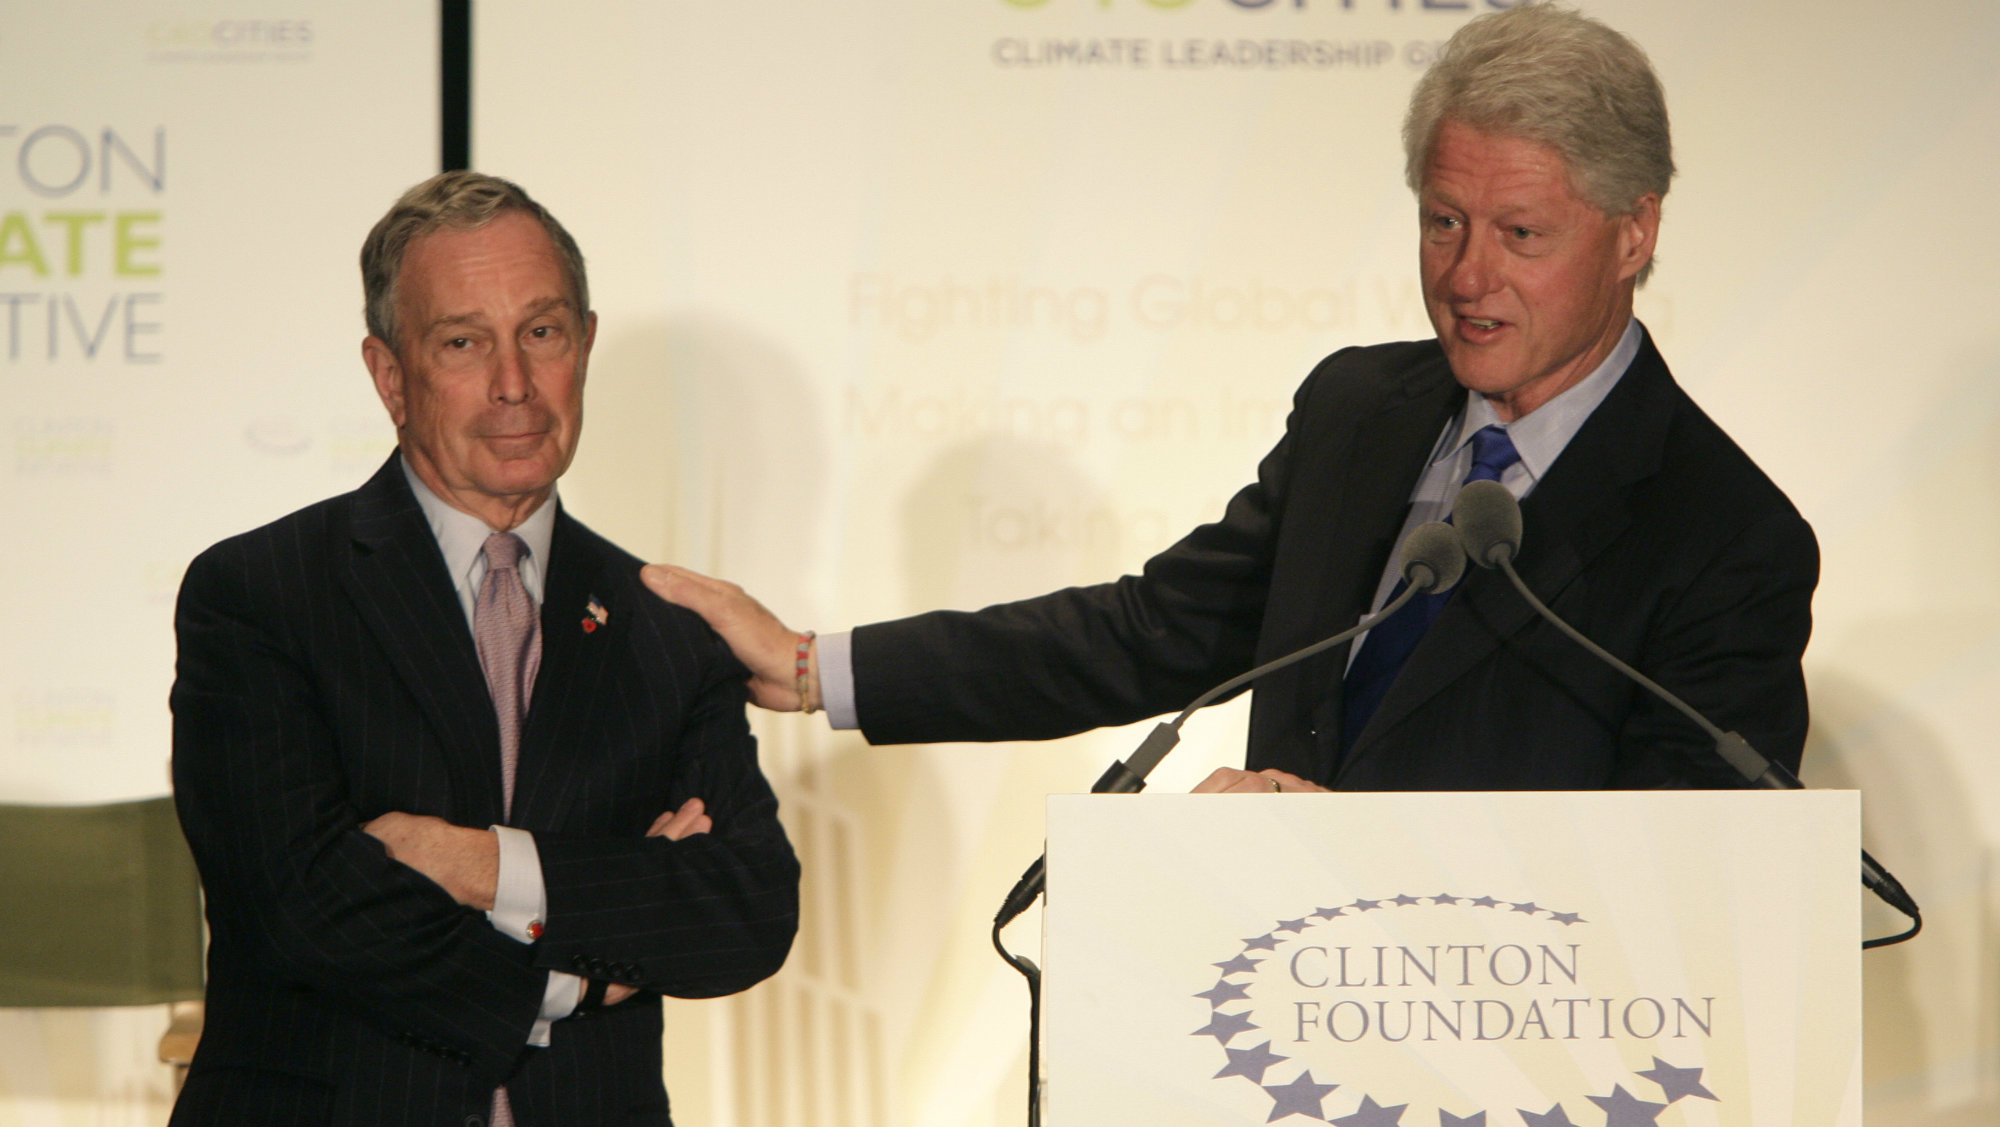 Former President Bill Clinton and former New York mayor Michael Bloomberg at a press conference